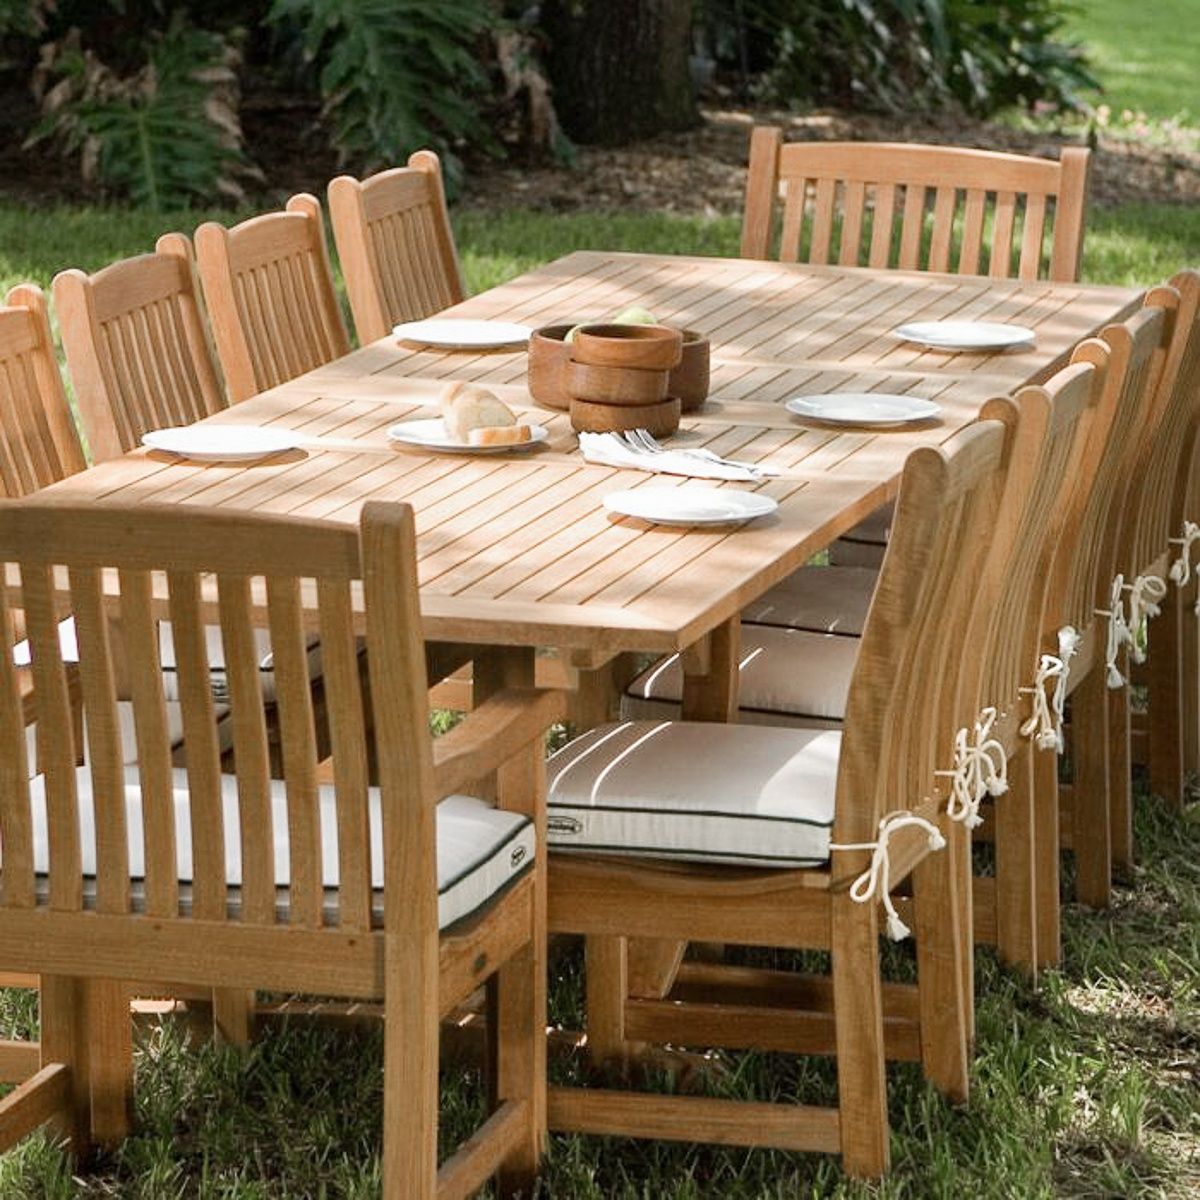 Veranda 12 person dining table teak furniture set for 12 seater wooden table